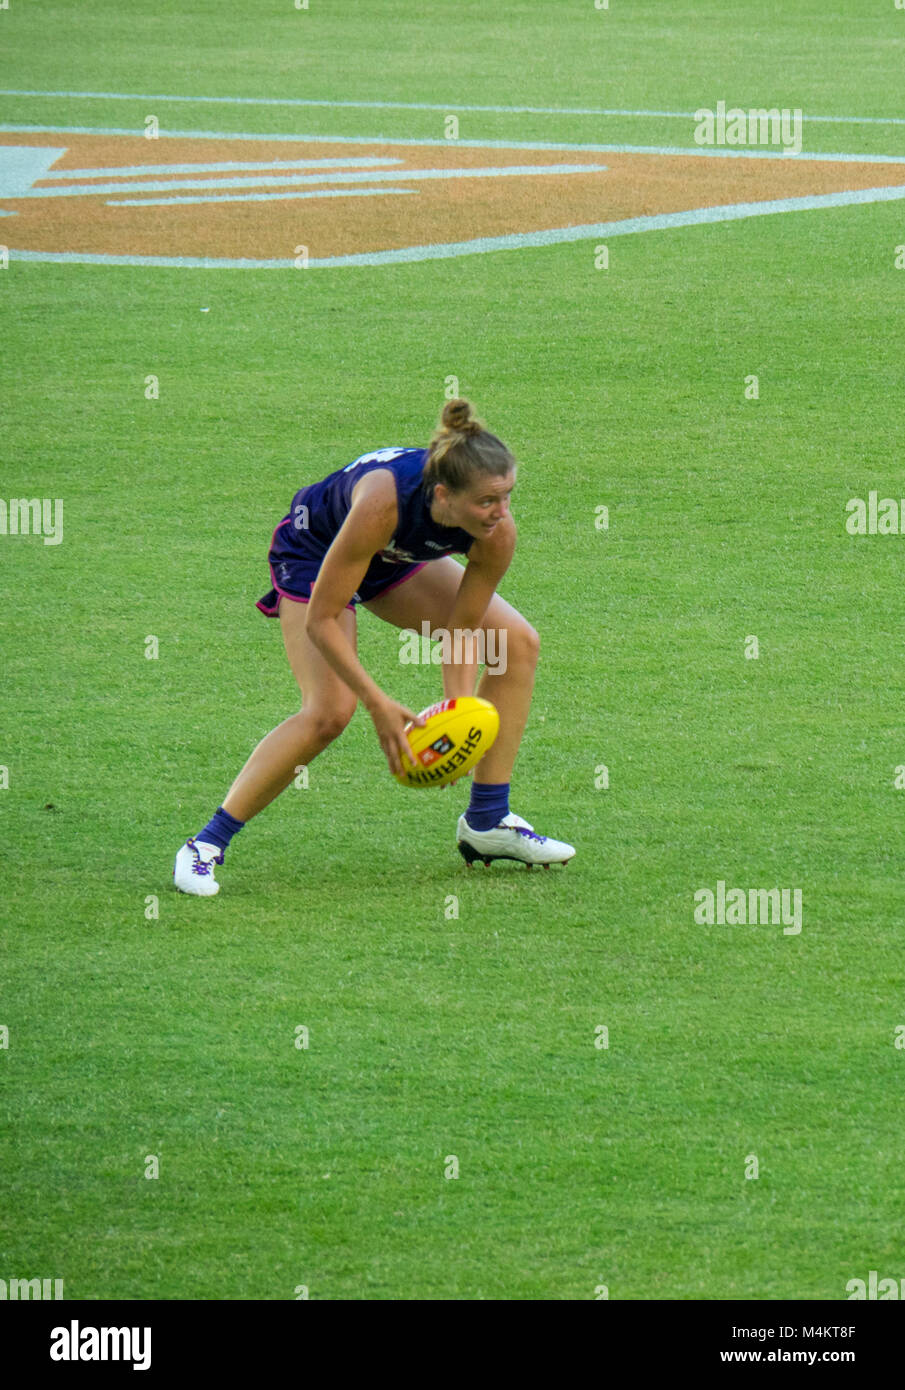 AFL Fremantle Football Club Women's team playing against Collingwood in front of a record attendance at Optus - Stock Image